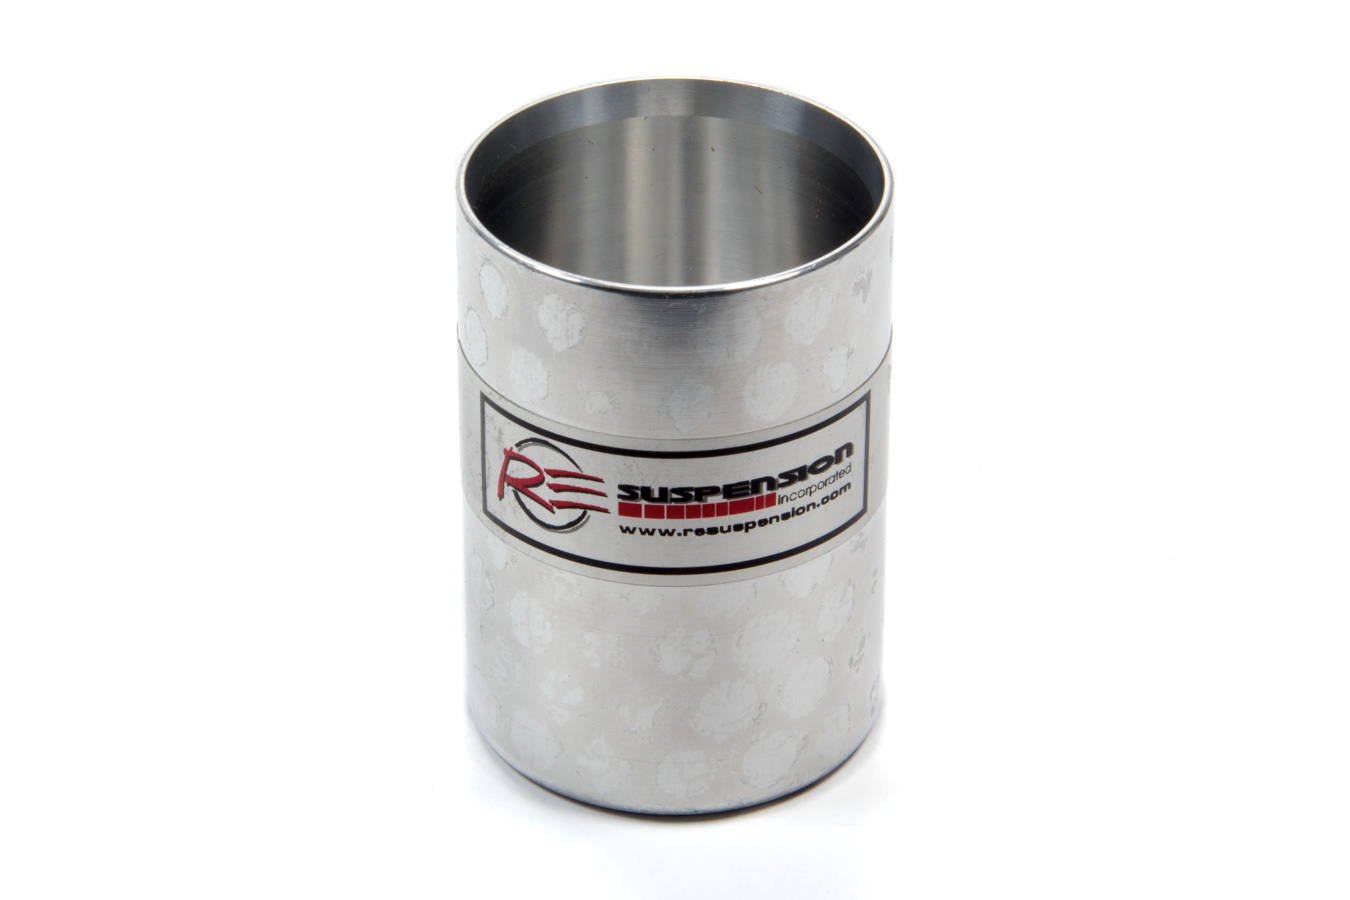 Penske Bump Rubber Cup 3in